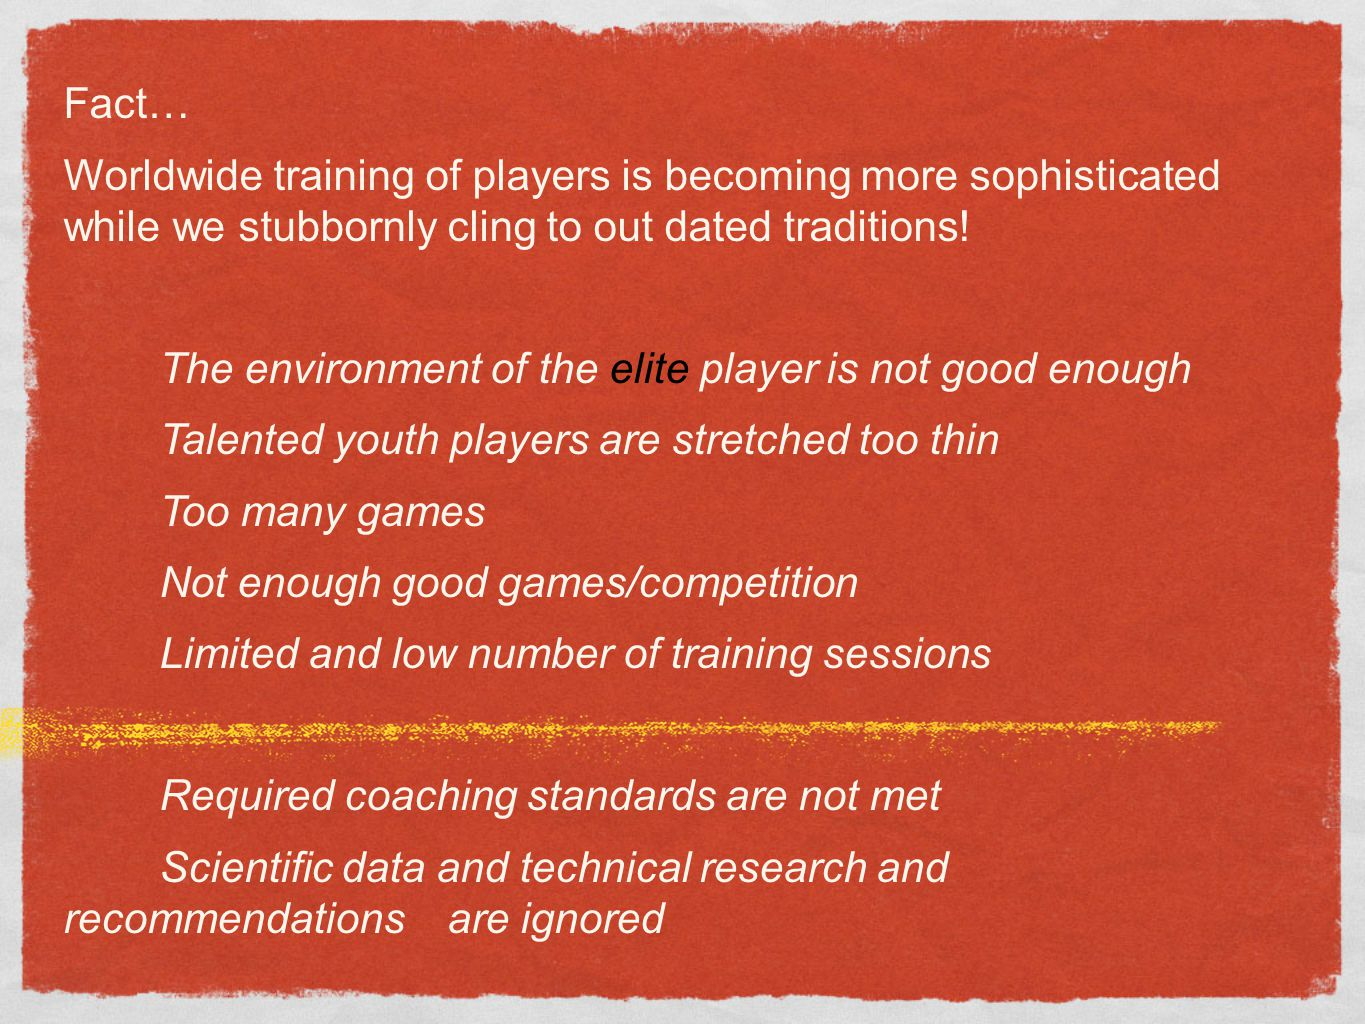 Fact… Worldwide training of players is becoming more sophisticated while we stubbornly cling to out dated traditions!